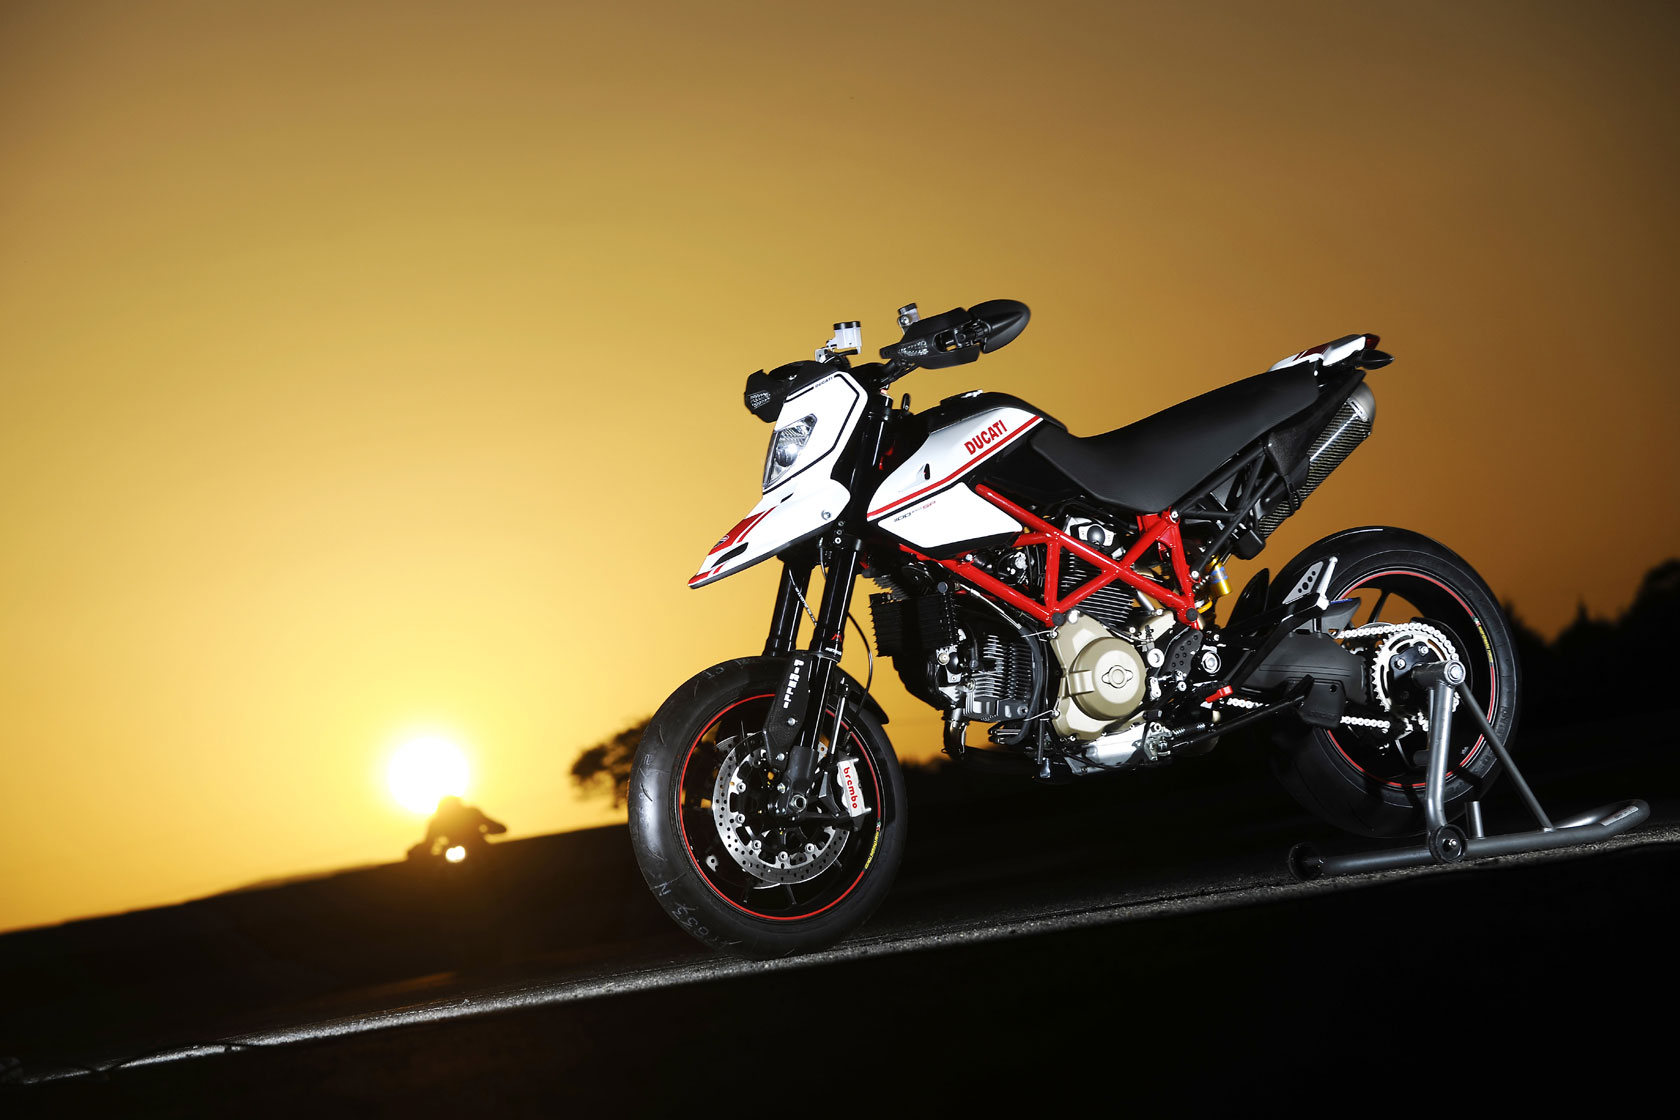 Ducati Hypermotard Air Cooled